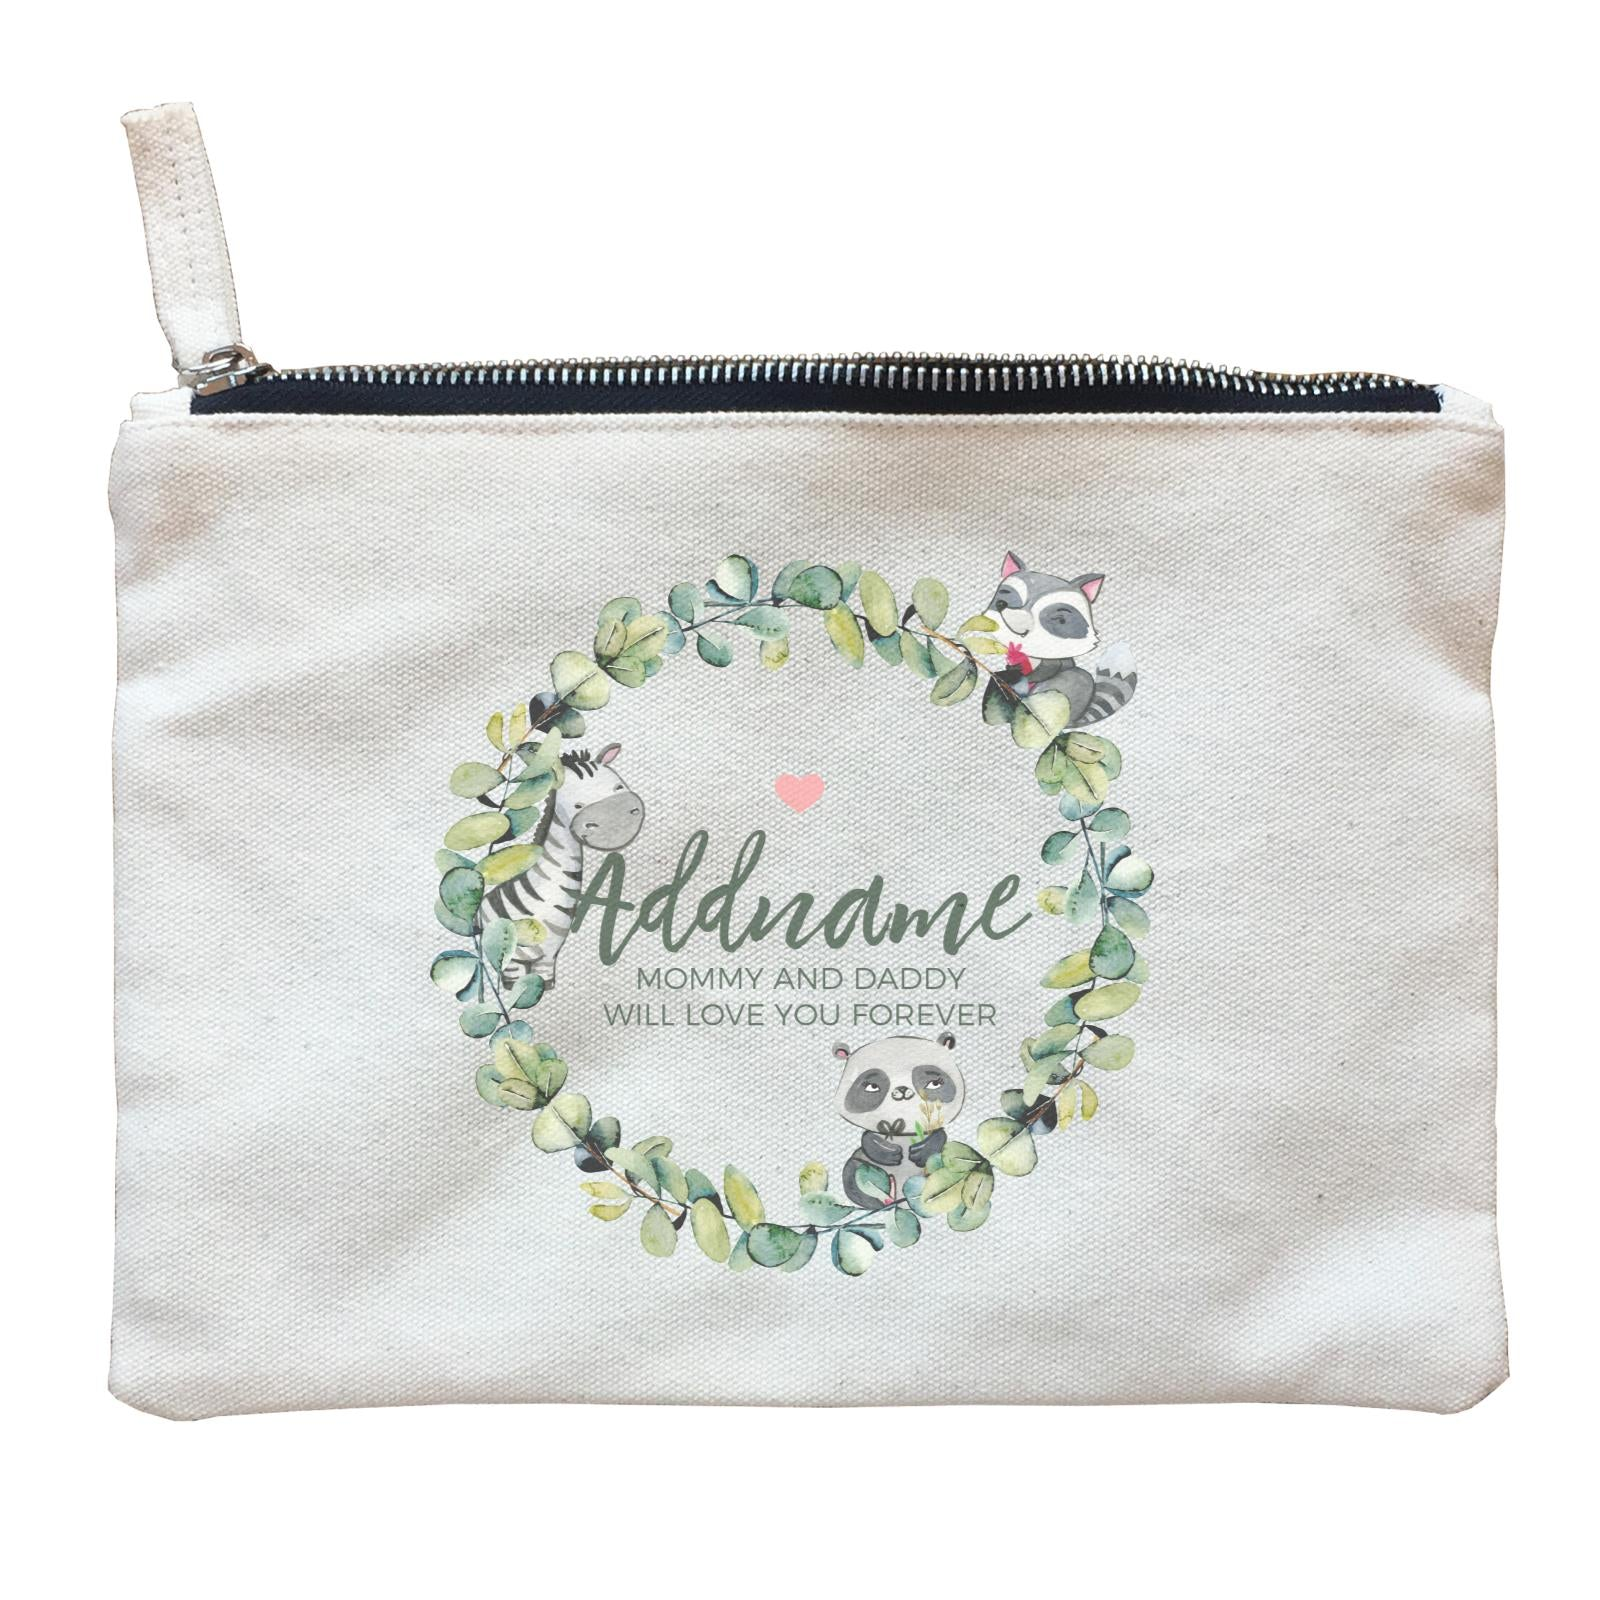 Watercolour Panda Zebra and Racoon Leaf Wreath Personalizable with Name and Text Zipper Pouch